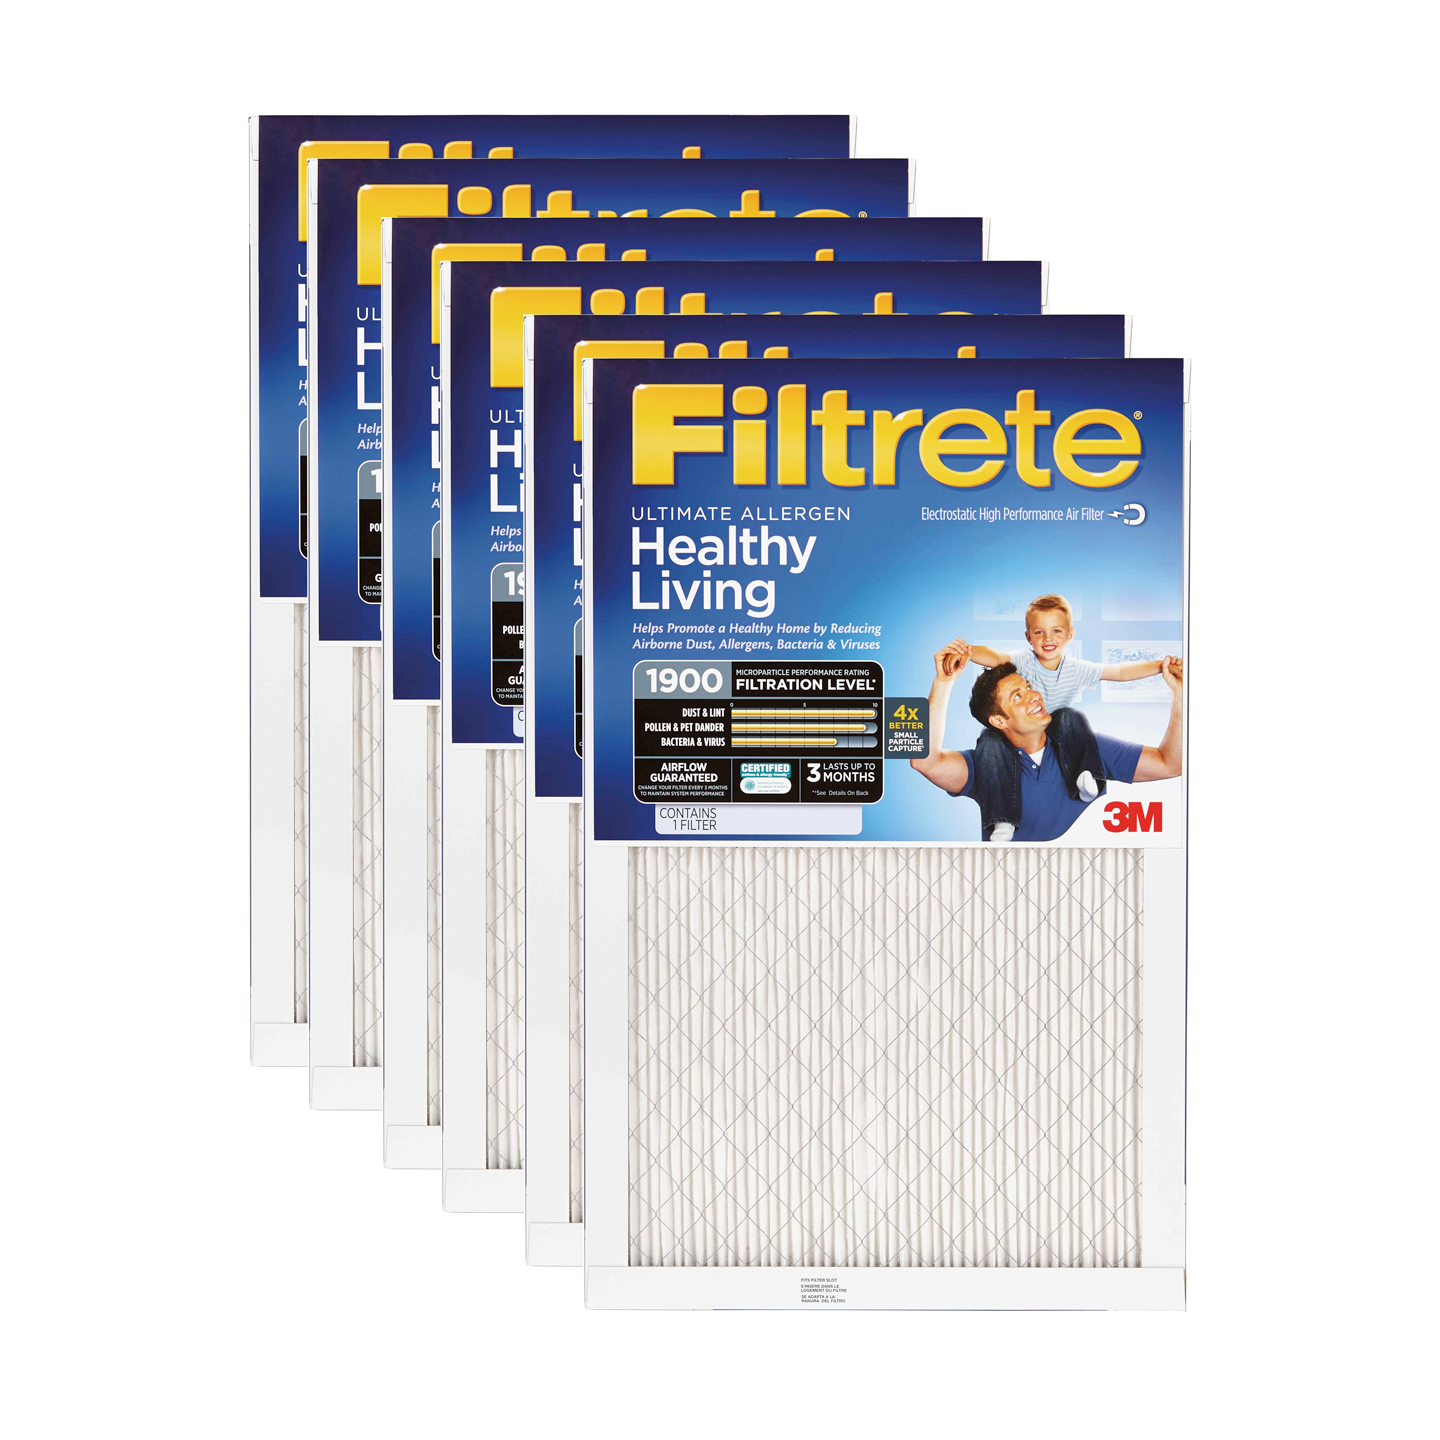 Filtrete 1900 Ultimate Allergen Healthy Living Filter - 12x24x1 (6-Pack) FILTRETE_ULTIMATE_BLUE_12x24x1_6_PACK